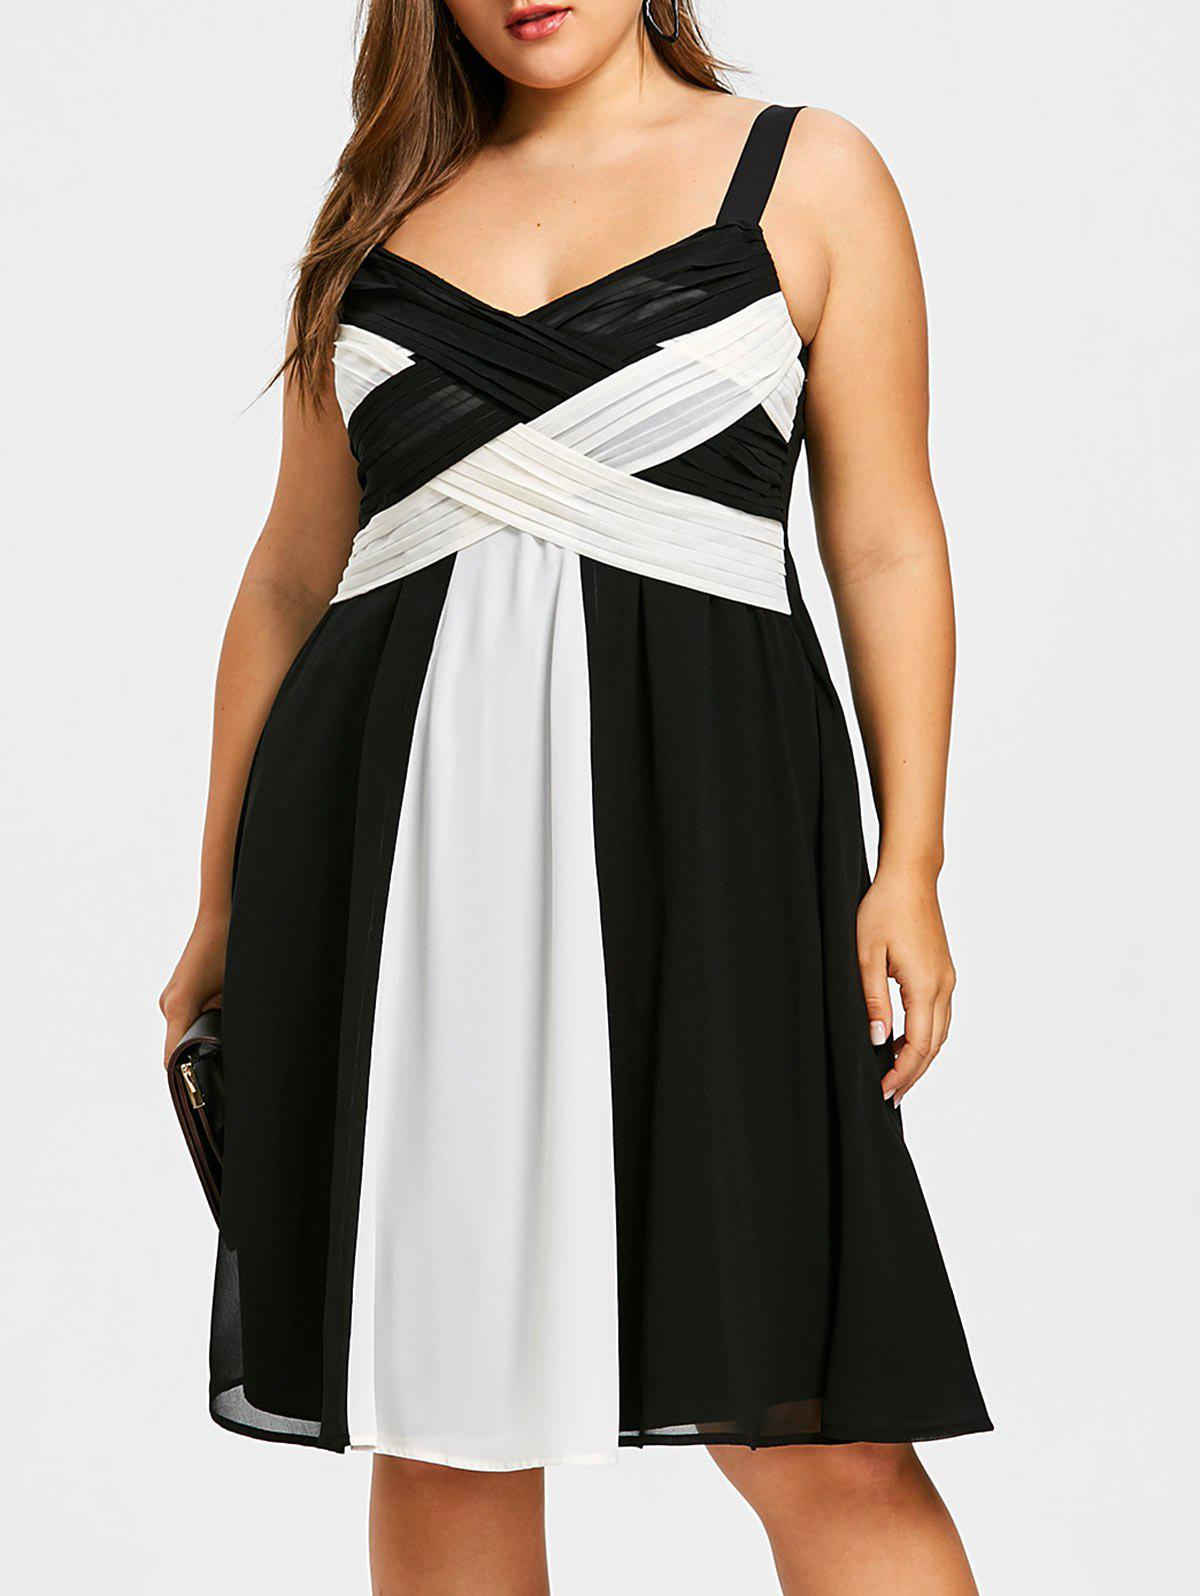 Chic Plus Size Two Tone Criss Cross Dress